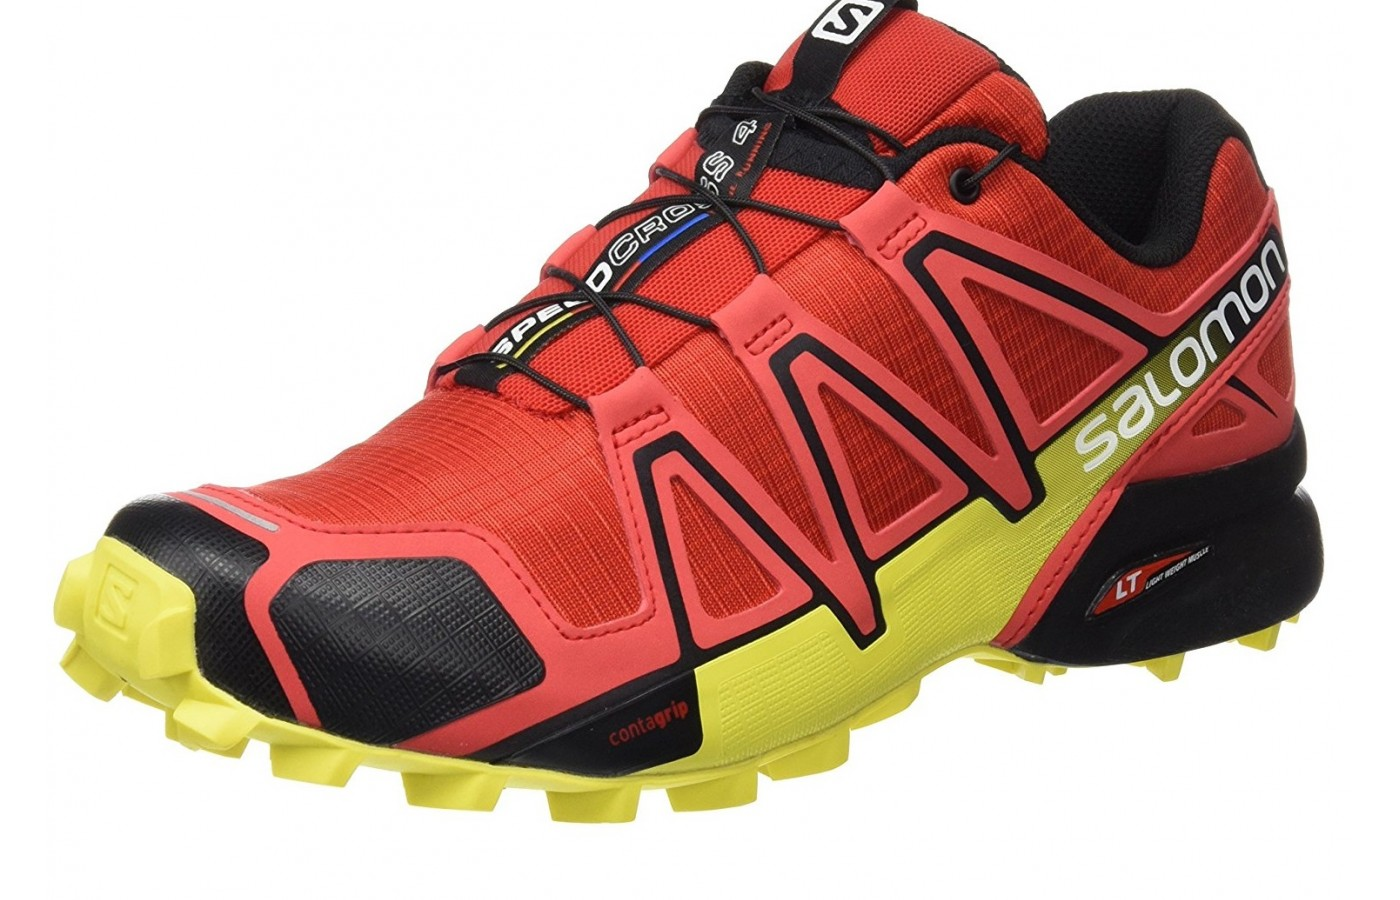 Salomon Speedcross 4 Side view